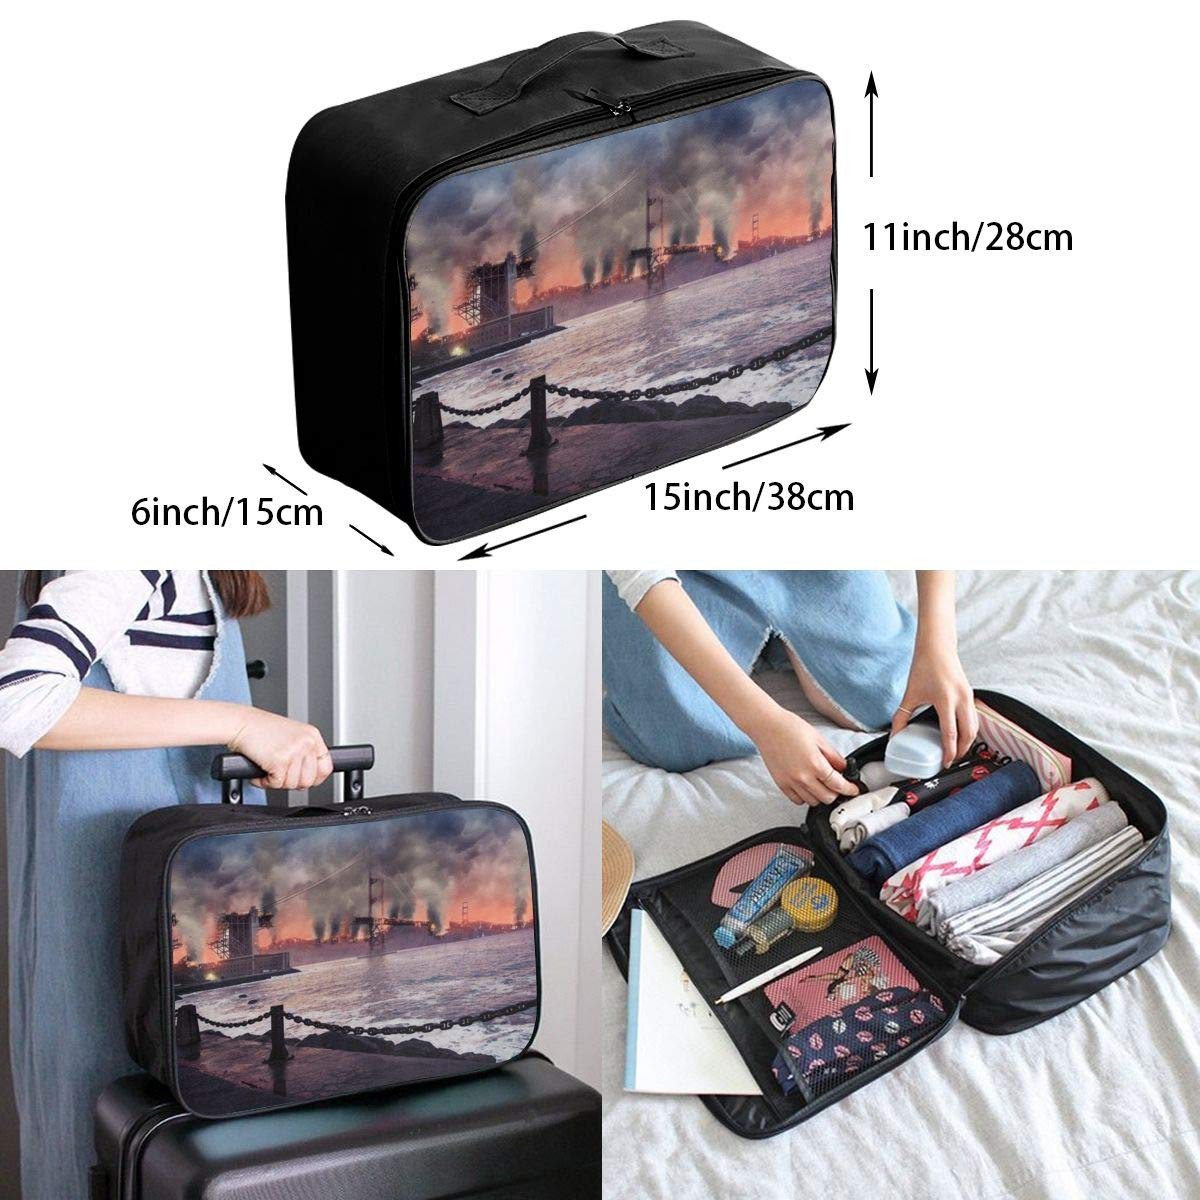 Bridge Building City Dusk Ocean Wharf Travel Lightweight Waterproof Foldable Storage Carry Luggage Large Capacity Portable Luggage Bag Duffel Bag